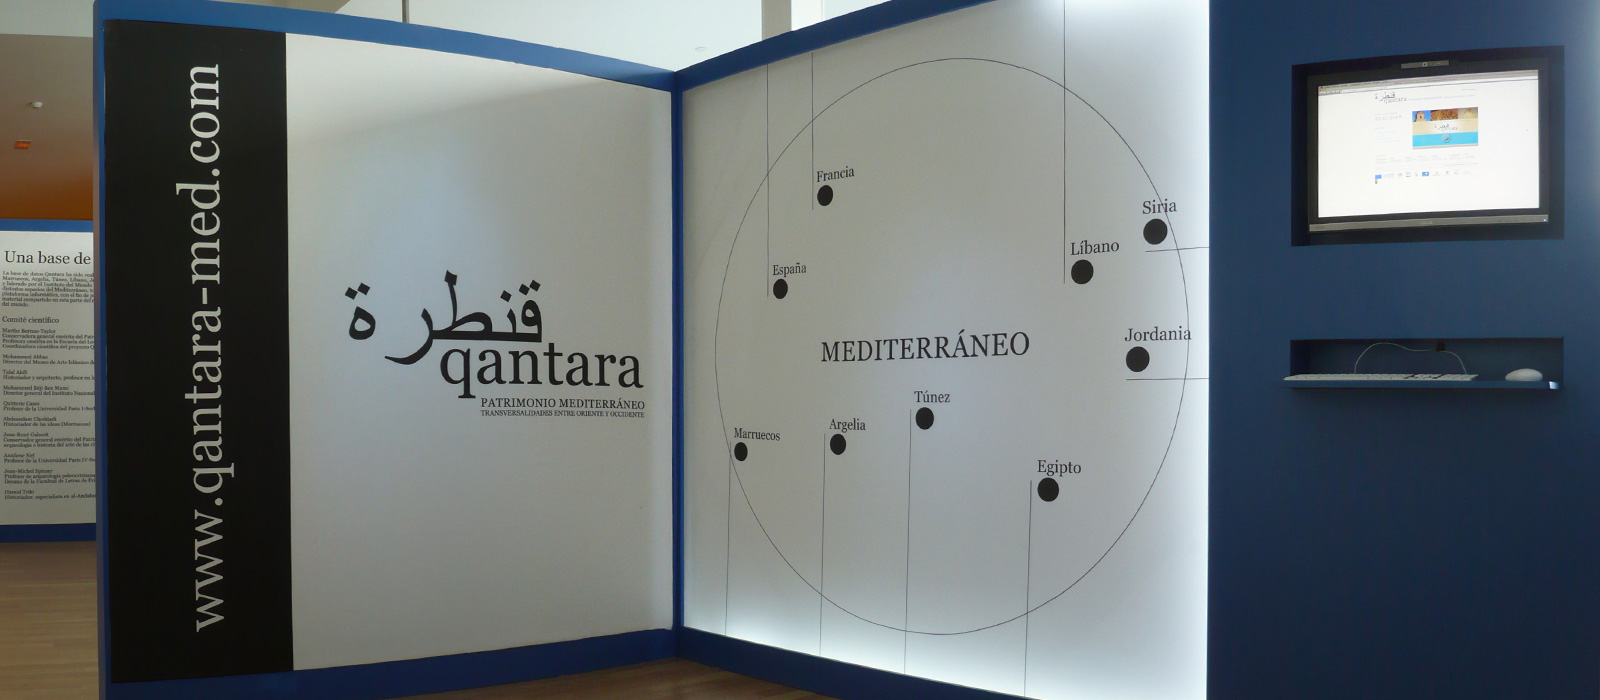 "Countries involved in the project ""Qantara, Mediterranean heritage. Transversalities between East and West""."